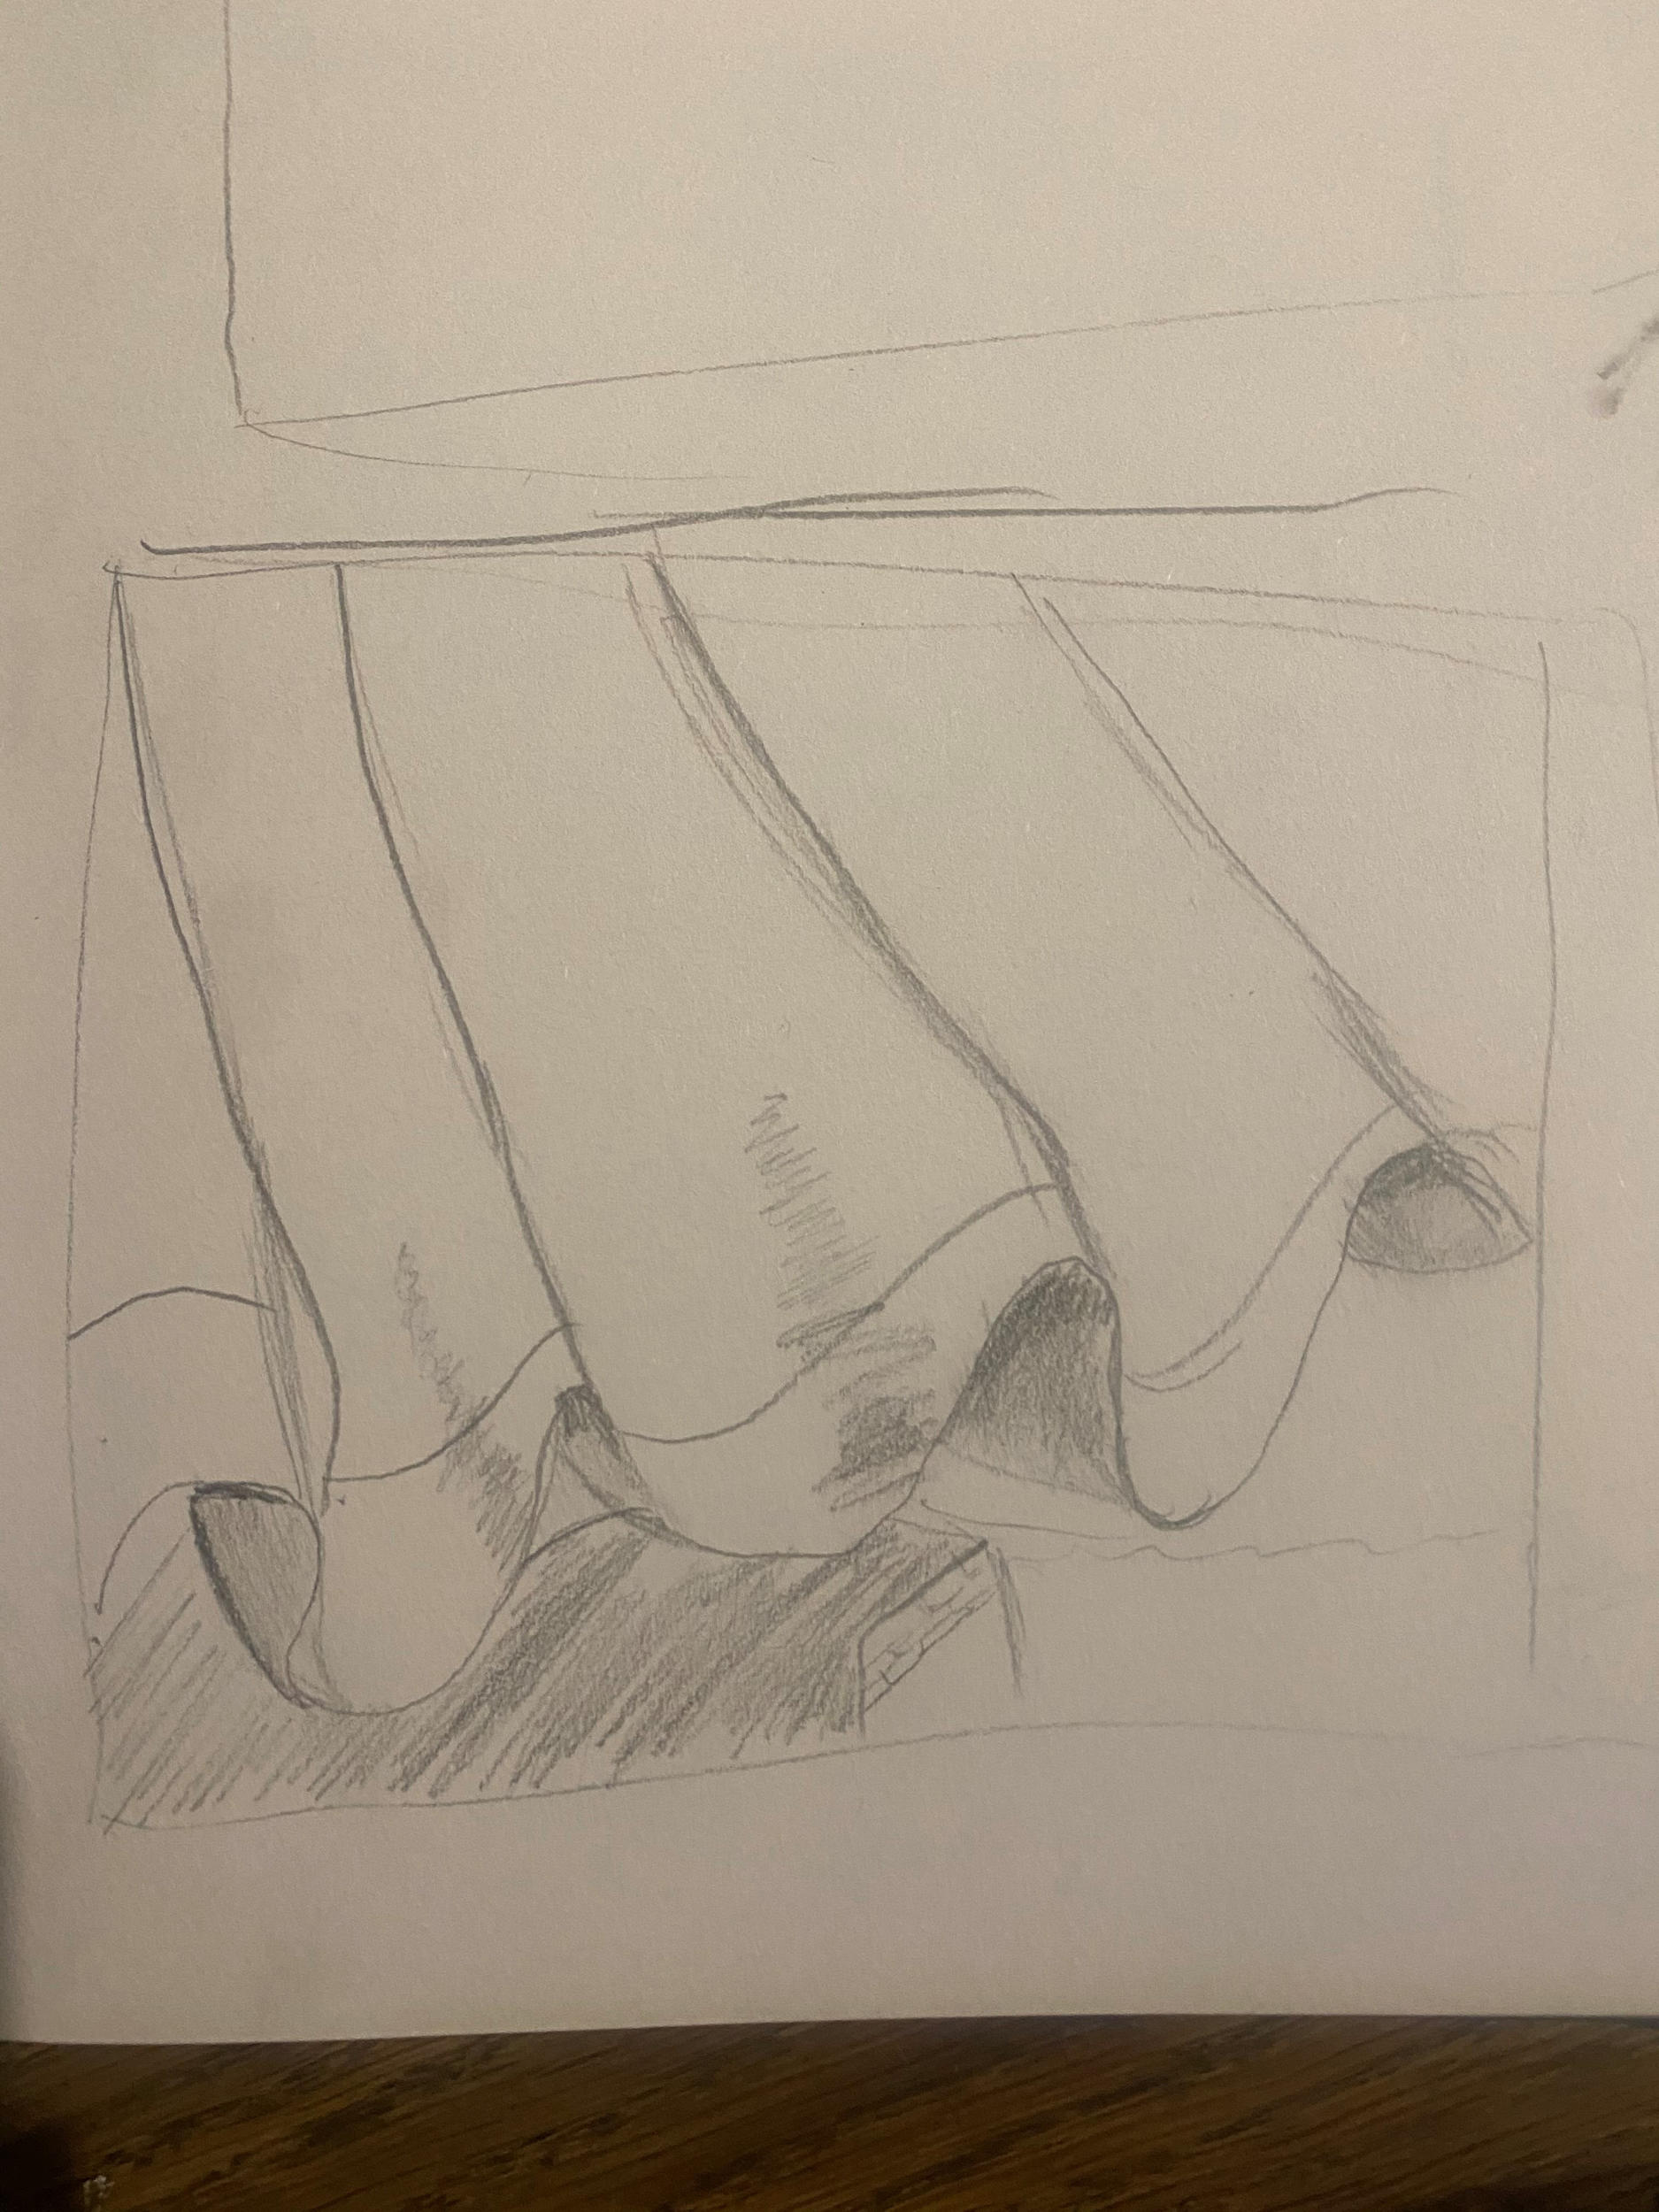 Artwork submitted by Art Club member - a sketch of fabric